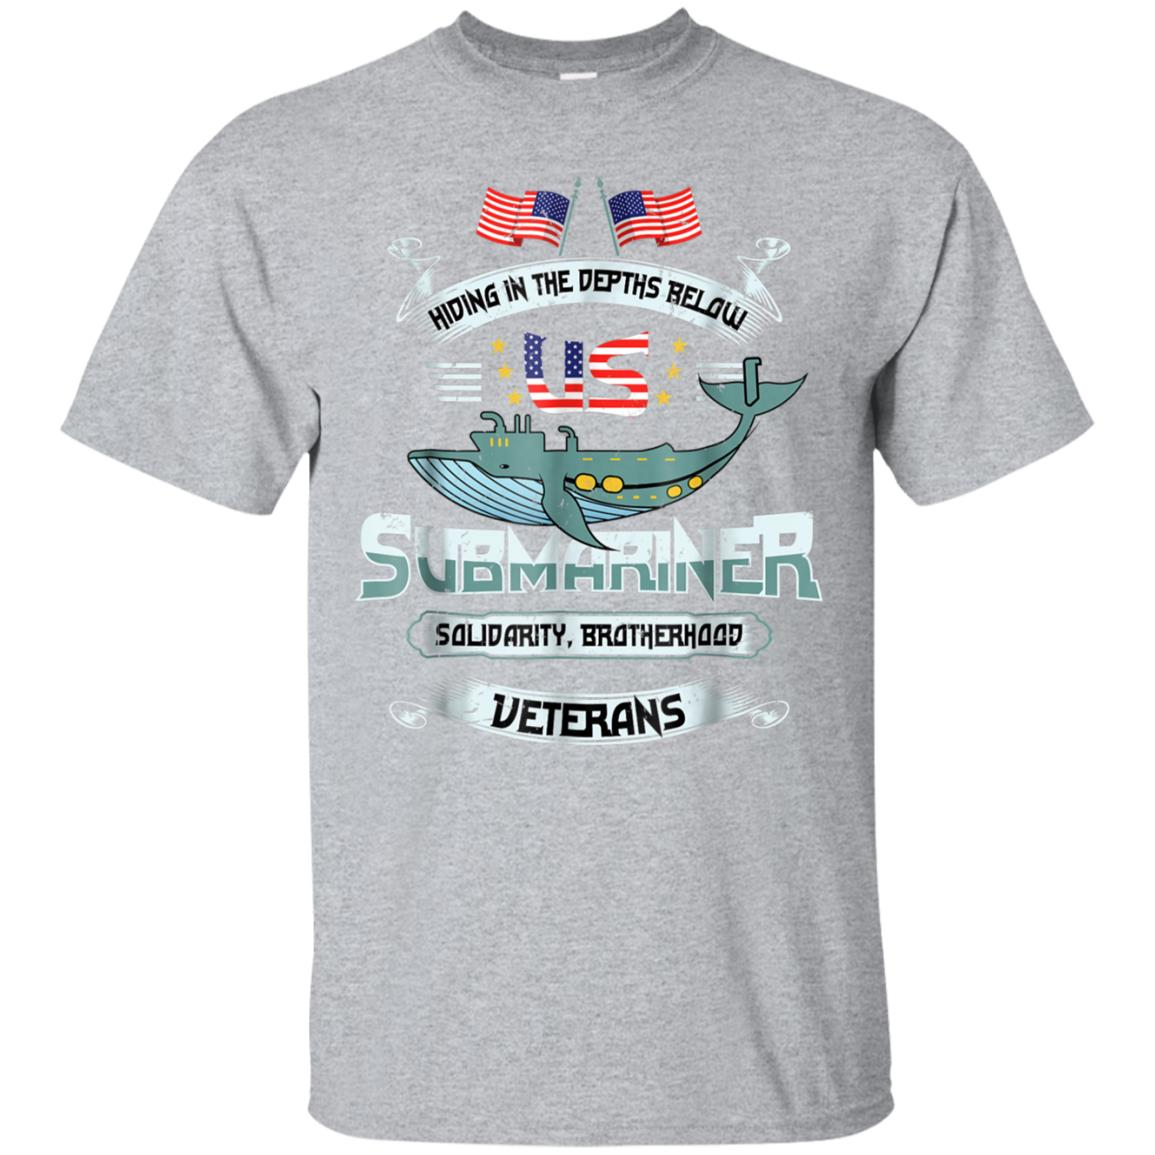 US Navy Veteran Submariner Tshirt - US Submariner Solidarity 99promocode